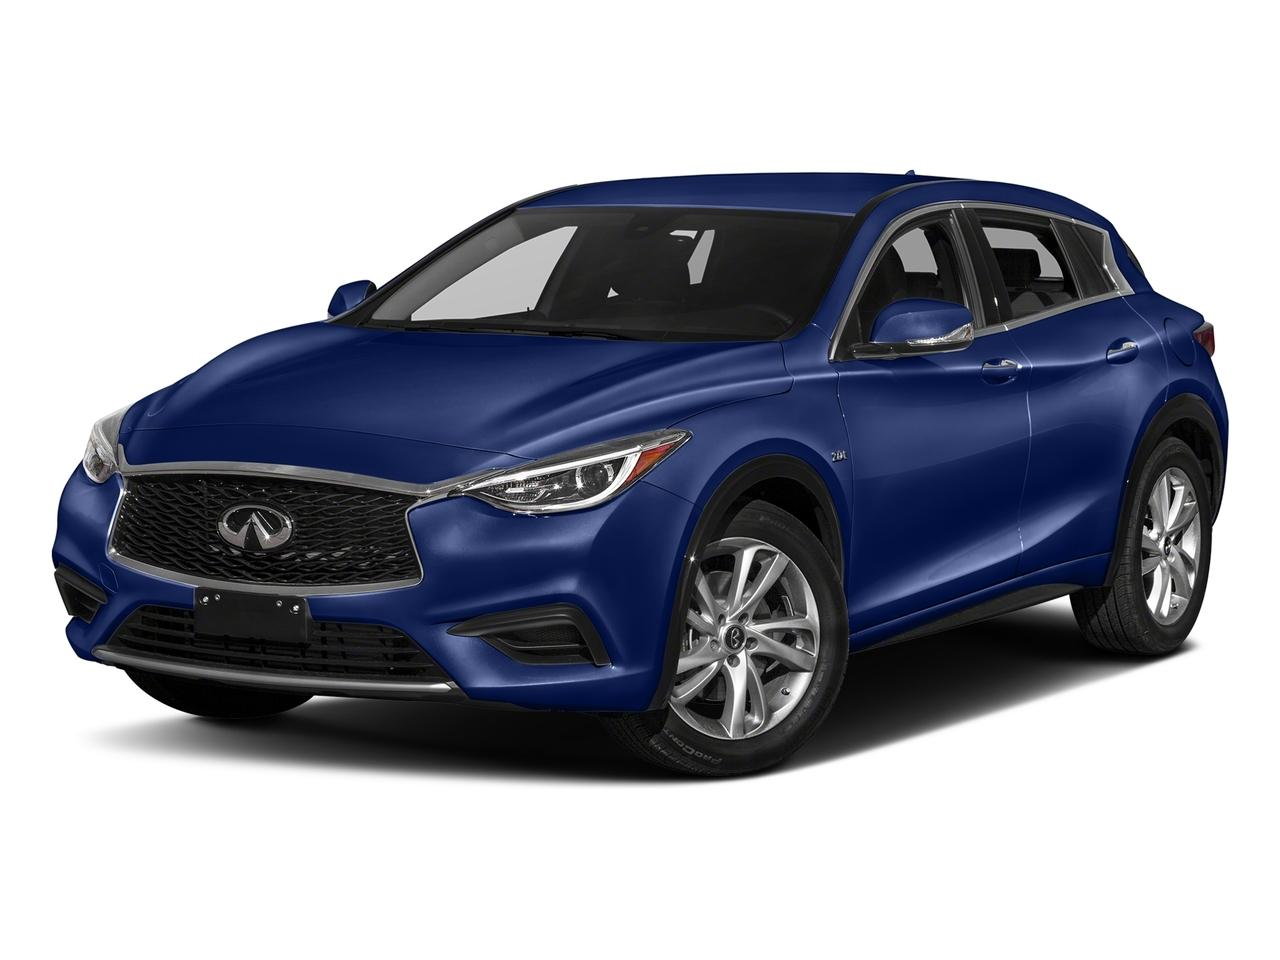 2017 INFINITI QX30 Vehicle Photo in Hollywood, MD 20636